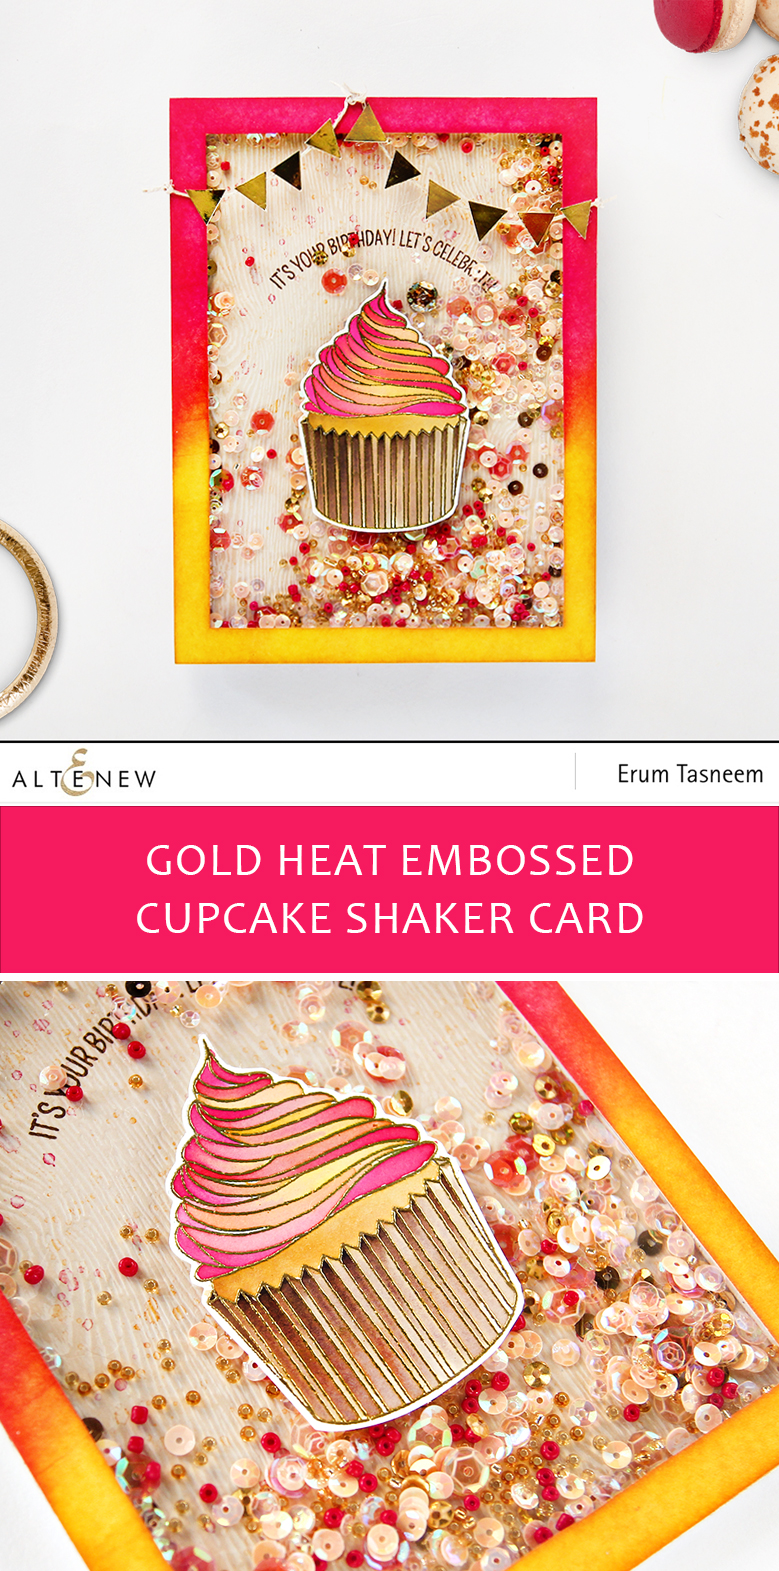 Altenew Layered Cupcake Stamp Set Shaker Card by Erum Tasneem | @pr0digy0